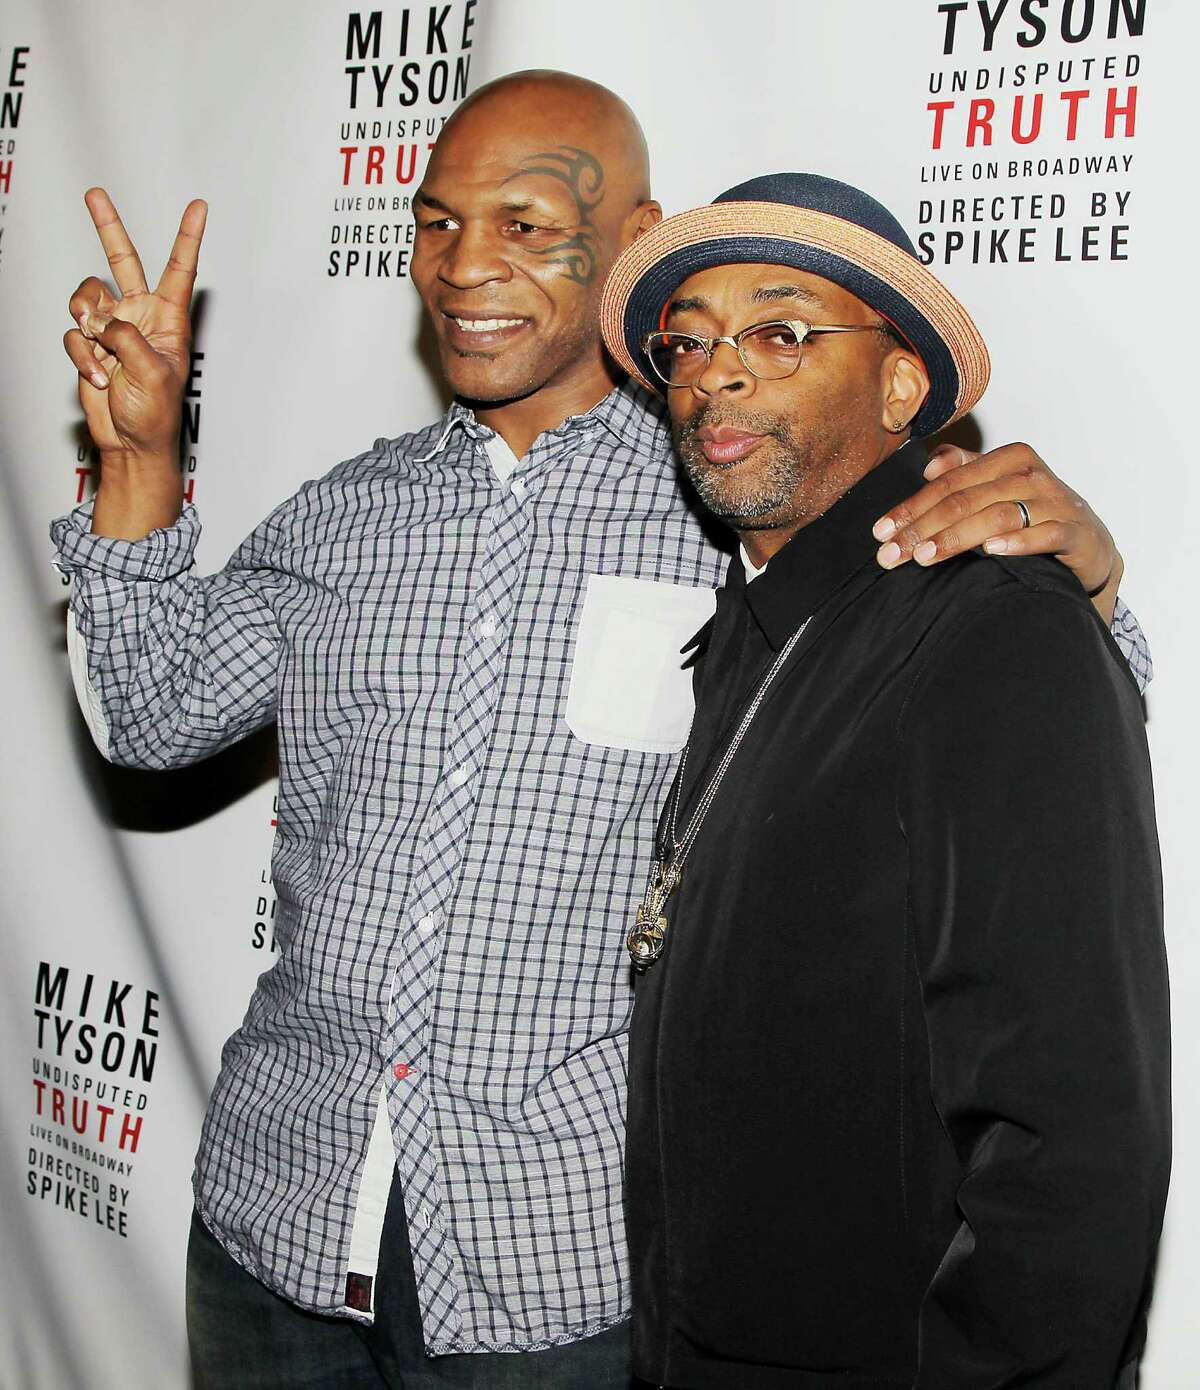 """This image released by Starpix shows, former boxer Mike Tyson, left, and Spike Lee pose backstage after the curtain call on the opening night of """"Mike Tyson: Undisputed Truth,"""" Thursday, Aug. 2, 2012 at the Longacre Theatre in New York. The one man show starring Tyson was directed by Spike Lee, and written by Tyson's wife Kiki. (AP Photo/Starpix, Amanda Schwab)"""